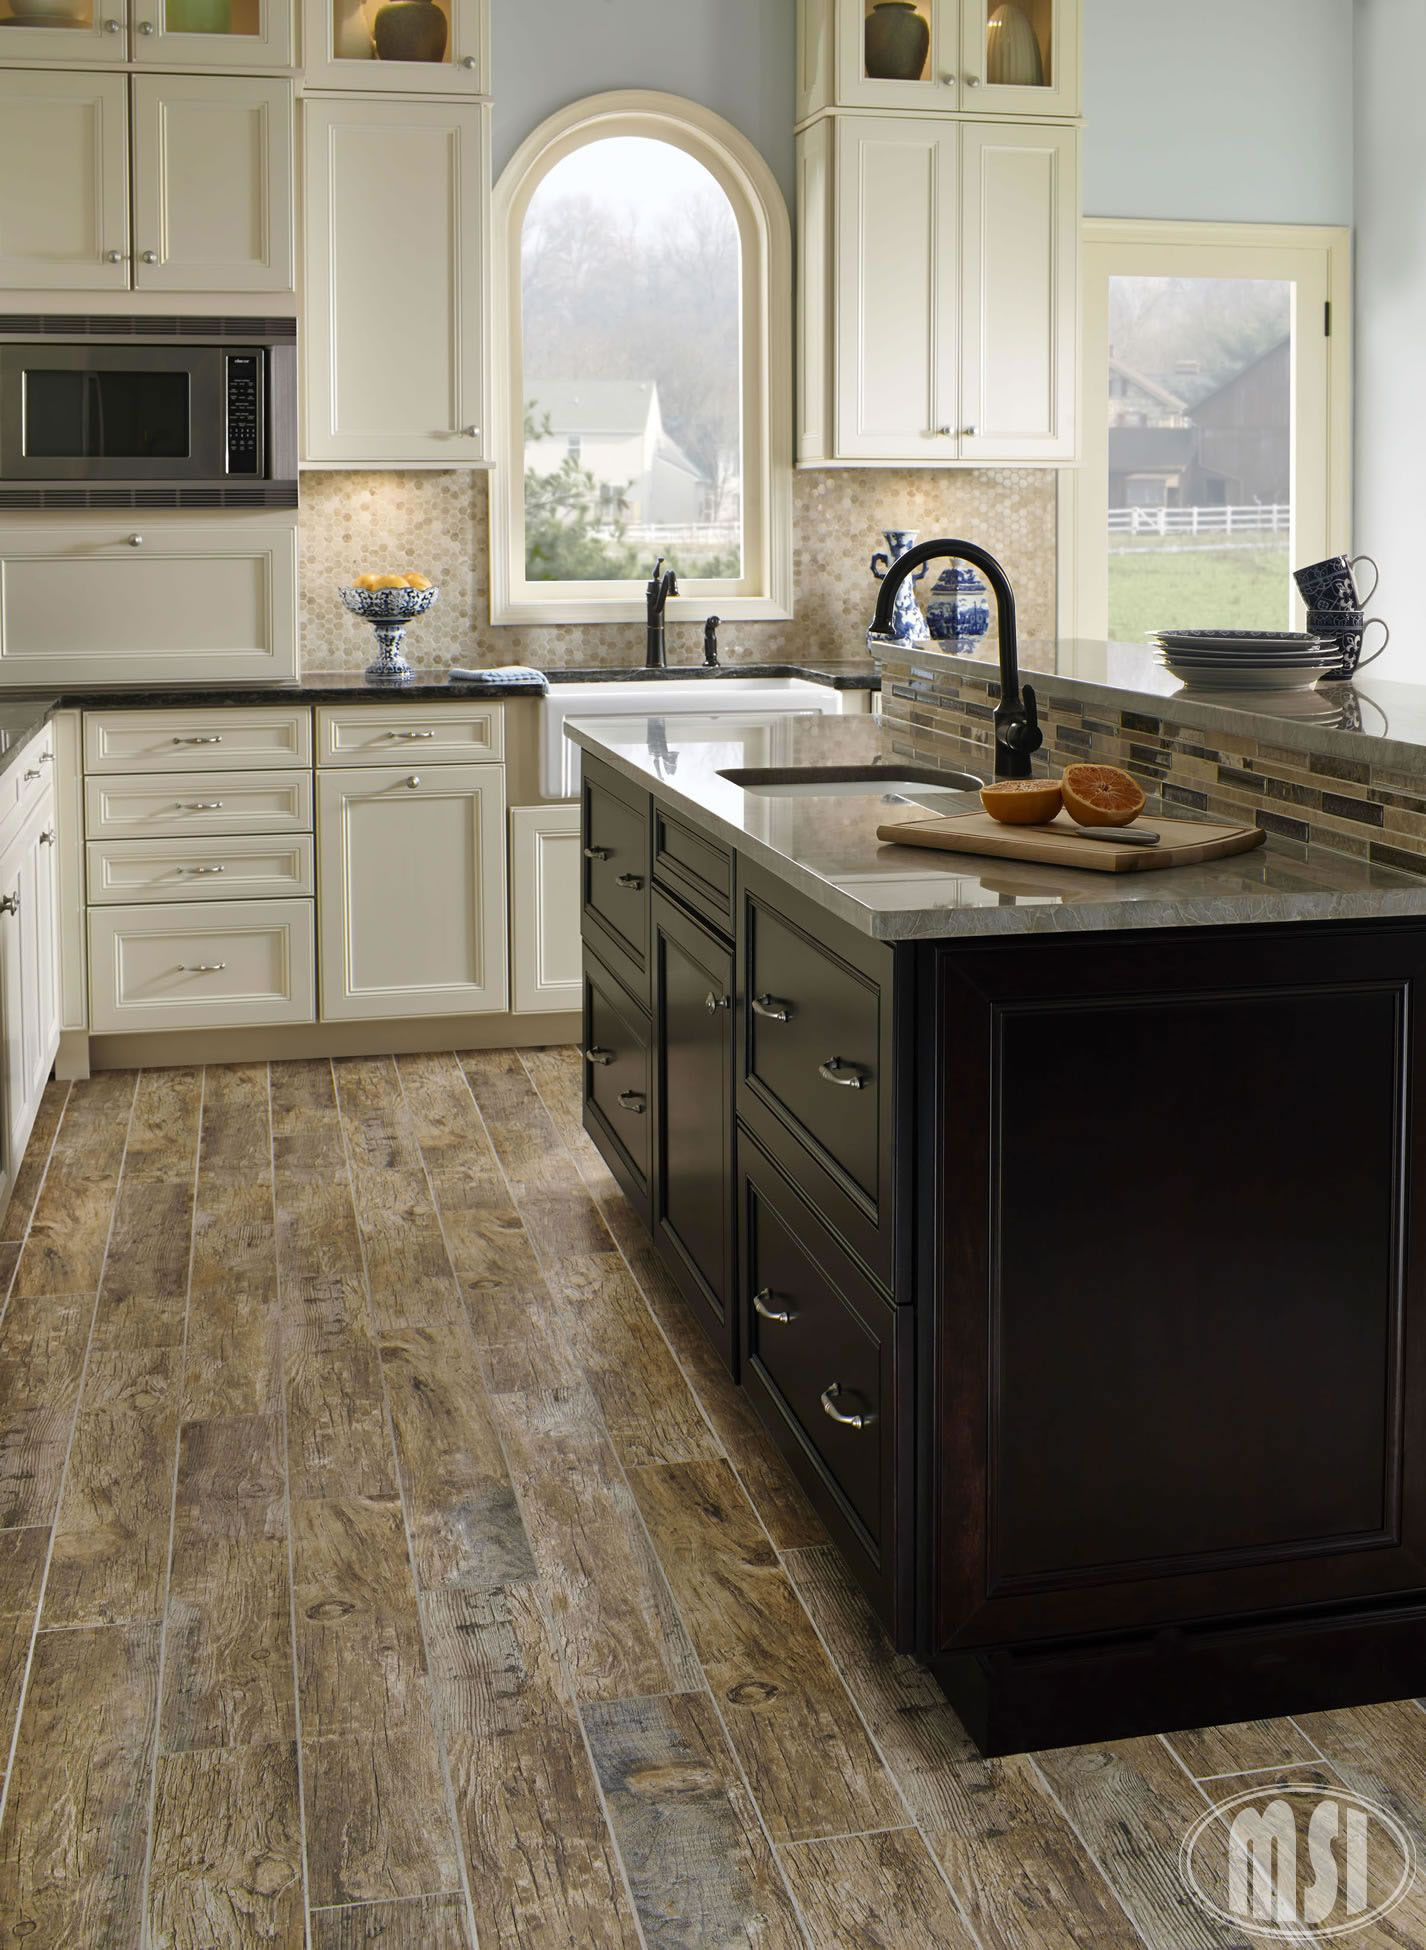 Porcelain kitchen floor tile - Perfect Kitchen Floor No Need To Worry About Real Wood Floors Redwood Natural 6x36